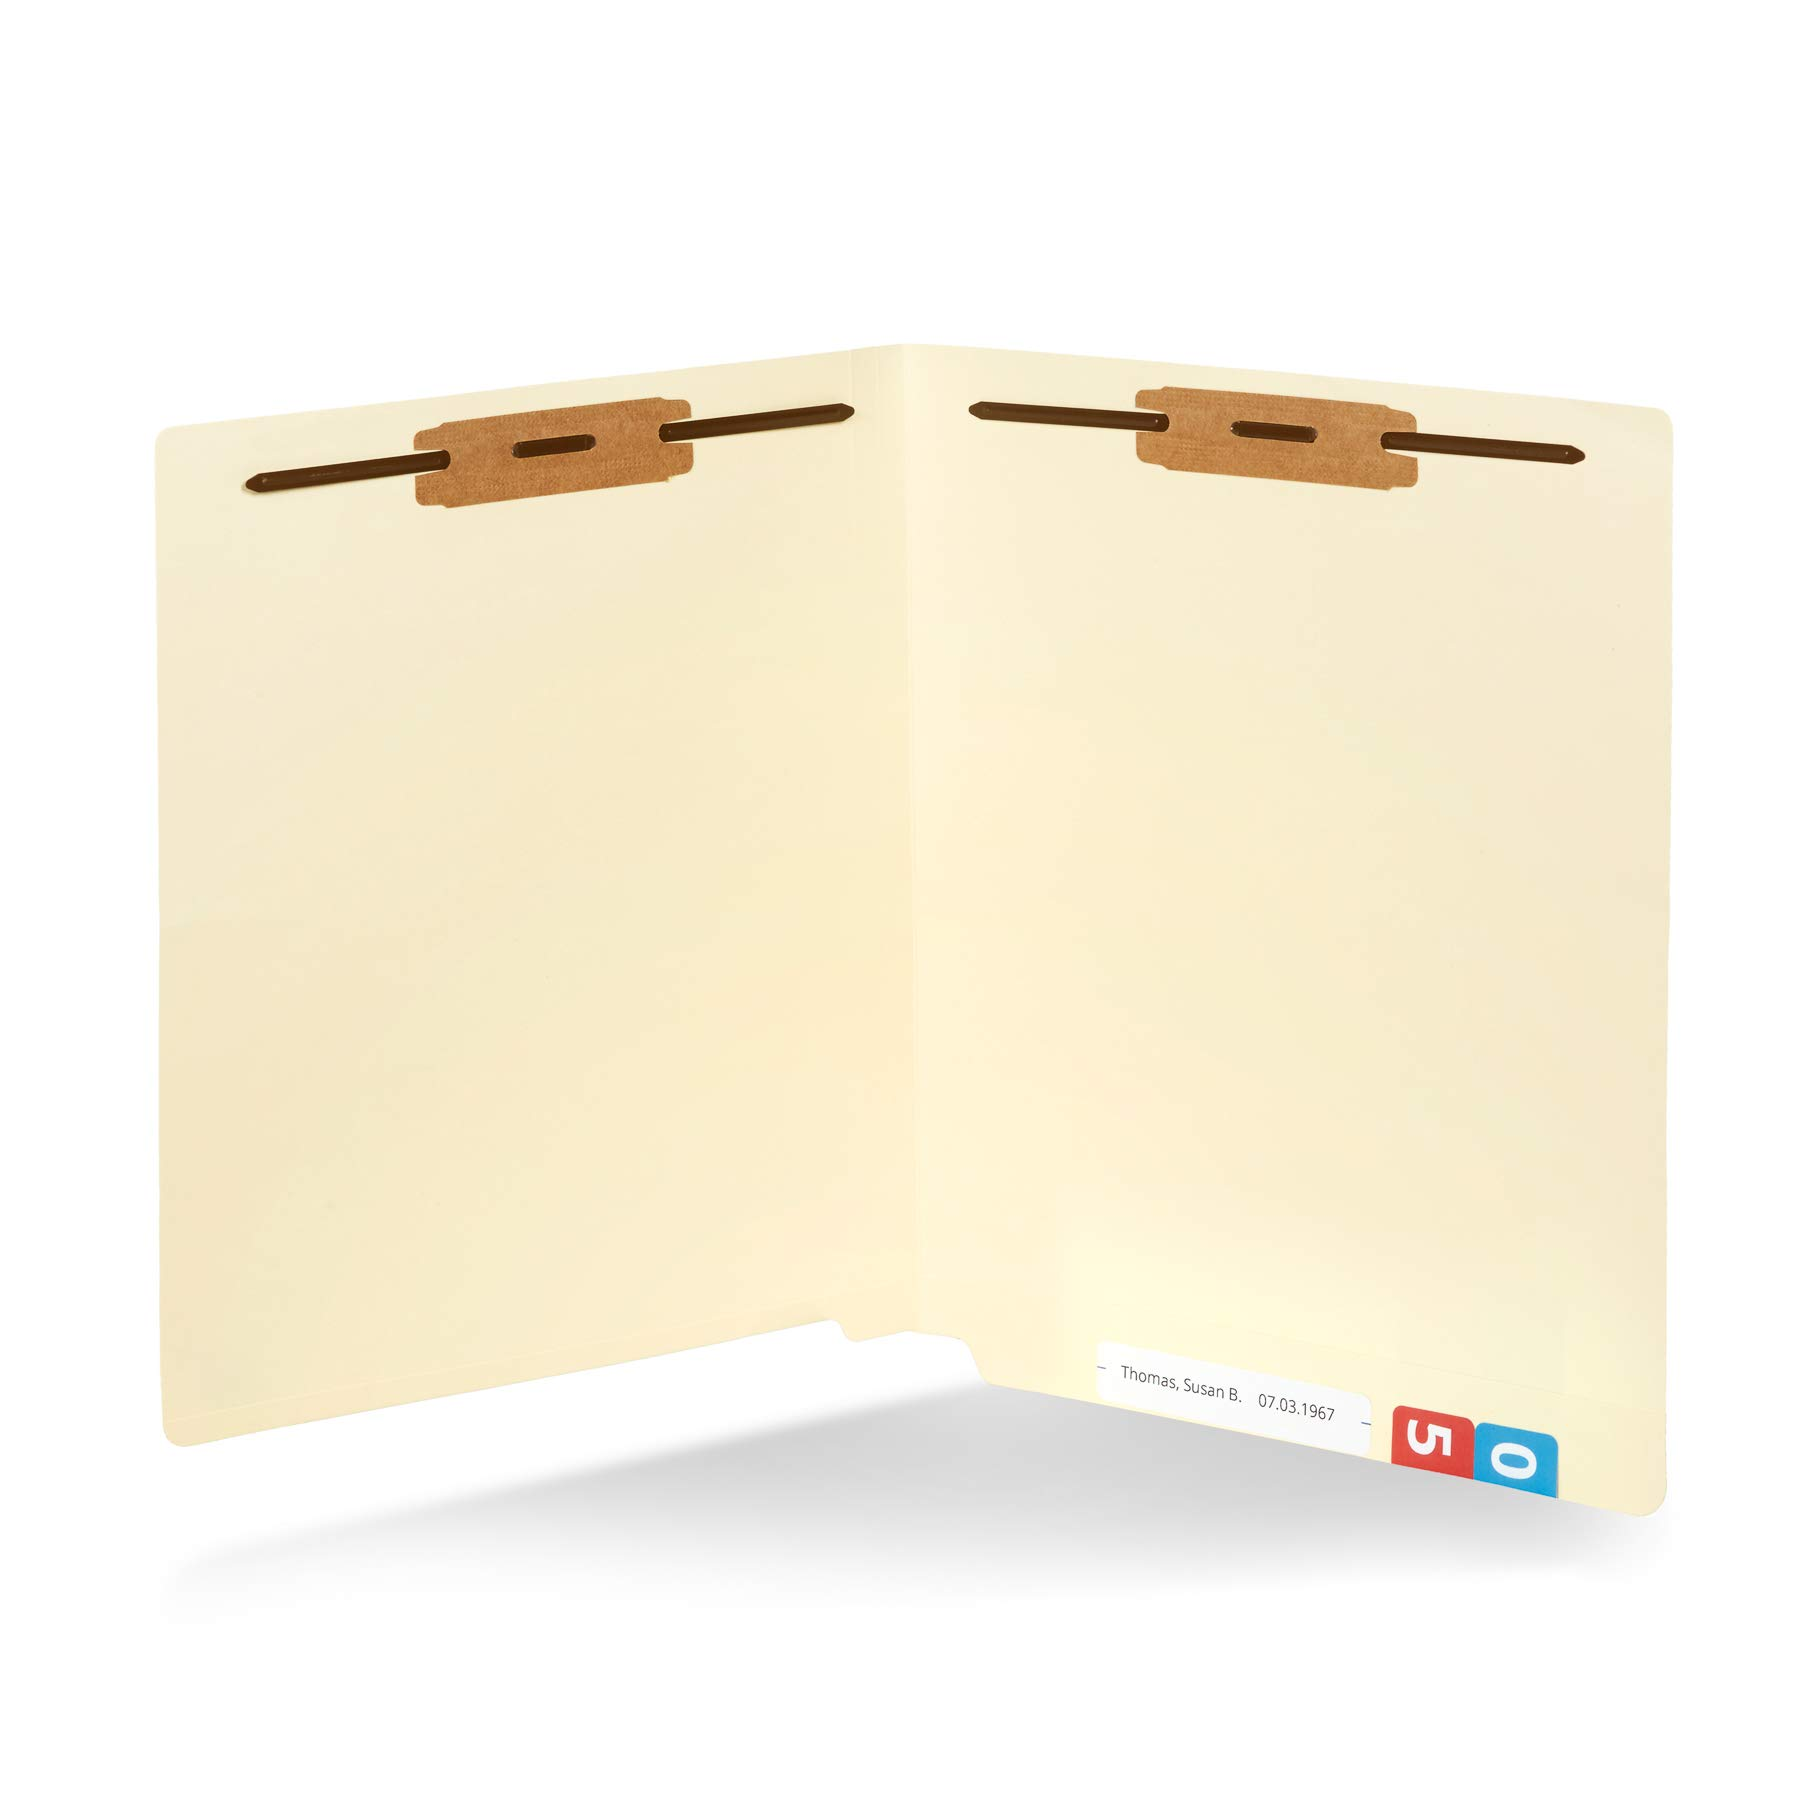 50 End Tab Fastener File Folders- Reinforced Straight Cut tab- Designed to Organize Standard Medical Files and Office documents- Letter Size, Manila, 50 Pack by Blue Summit Supplies